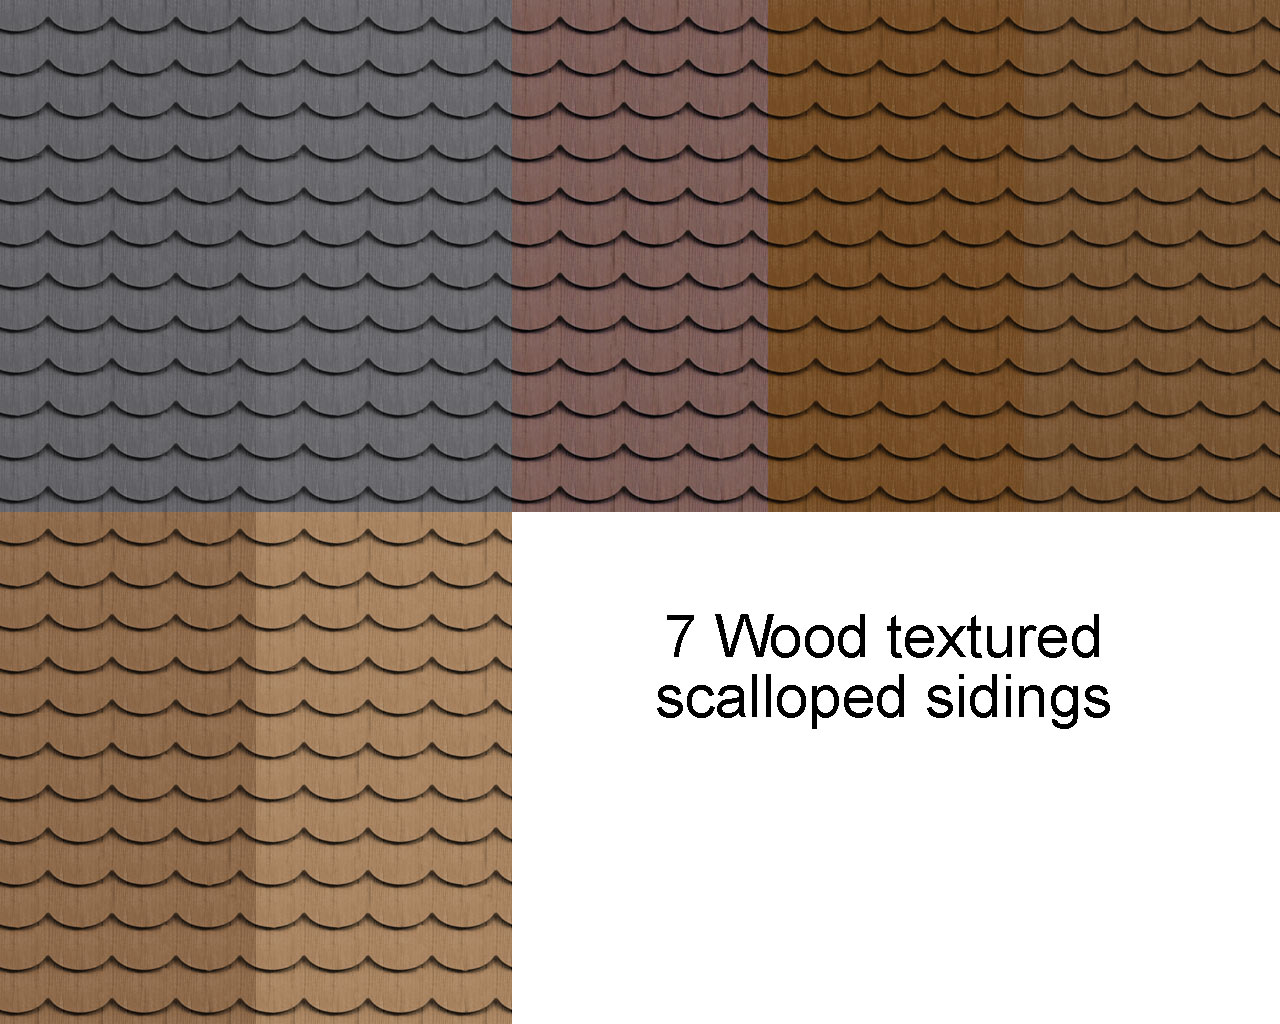 Mod The Sims - Wood textured scalloped siding *updated with 23 more colors*